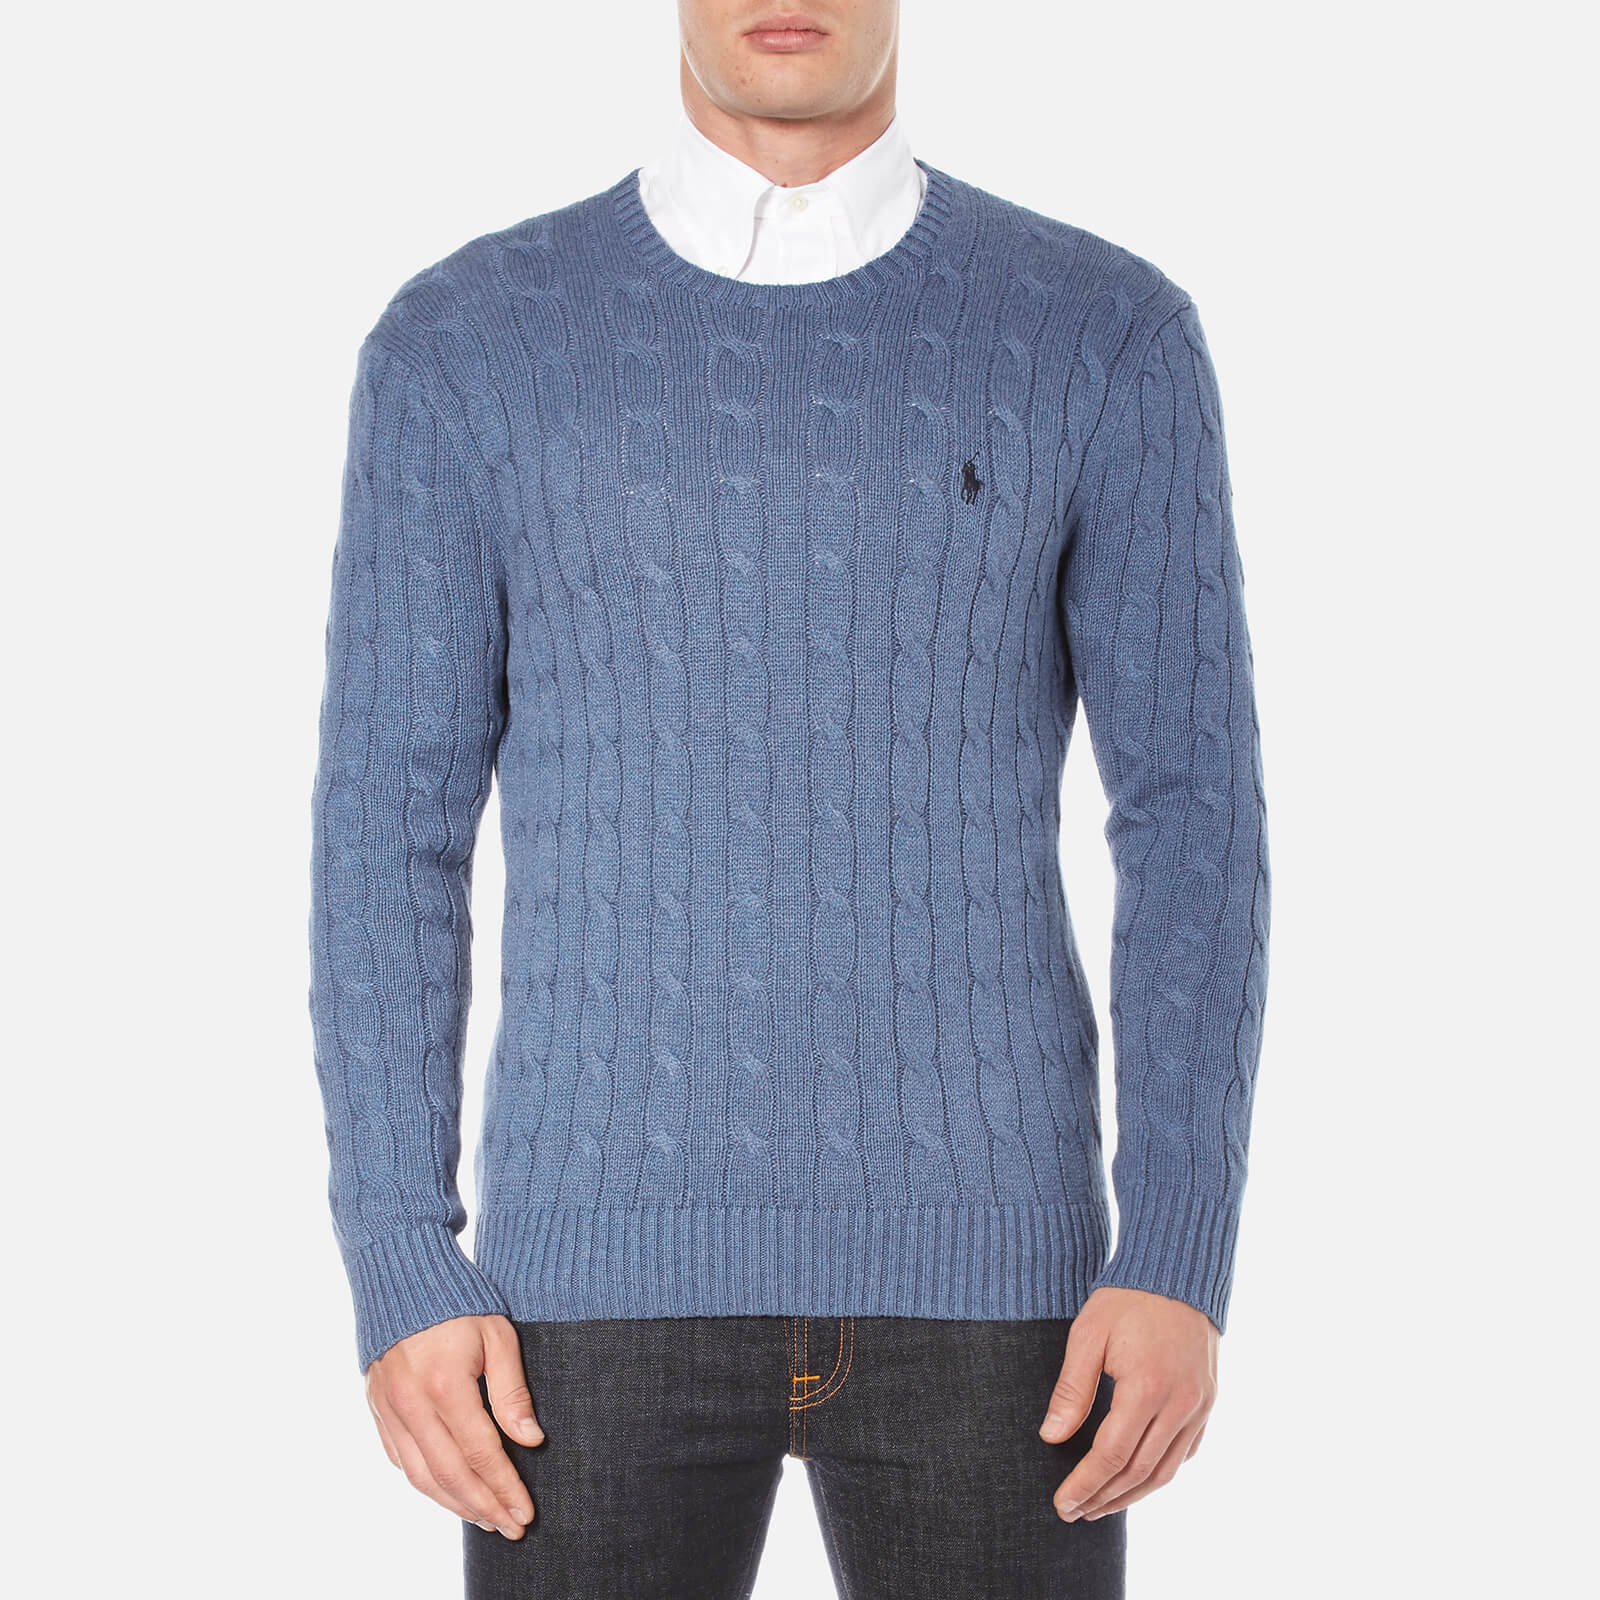 54792ca4e1d8 Polo Ralph Lauren Men's Long Sleeve Crew Neck Knitted Jumper - Night Blue  Heather - Free UK Delivery over £50